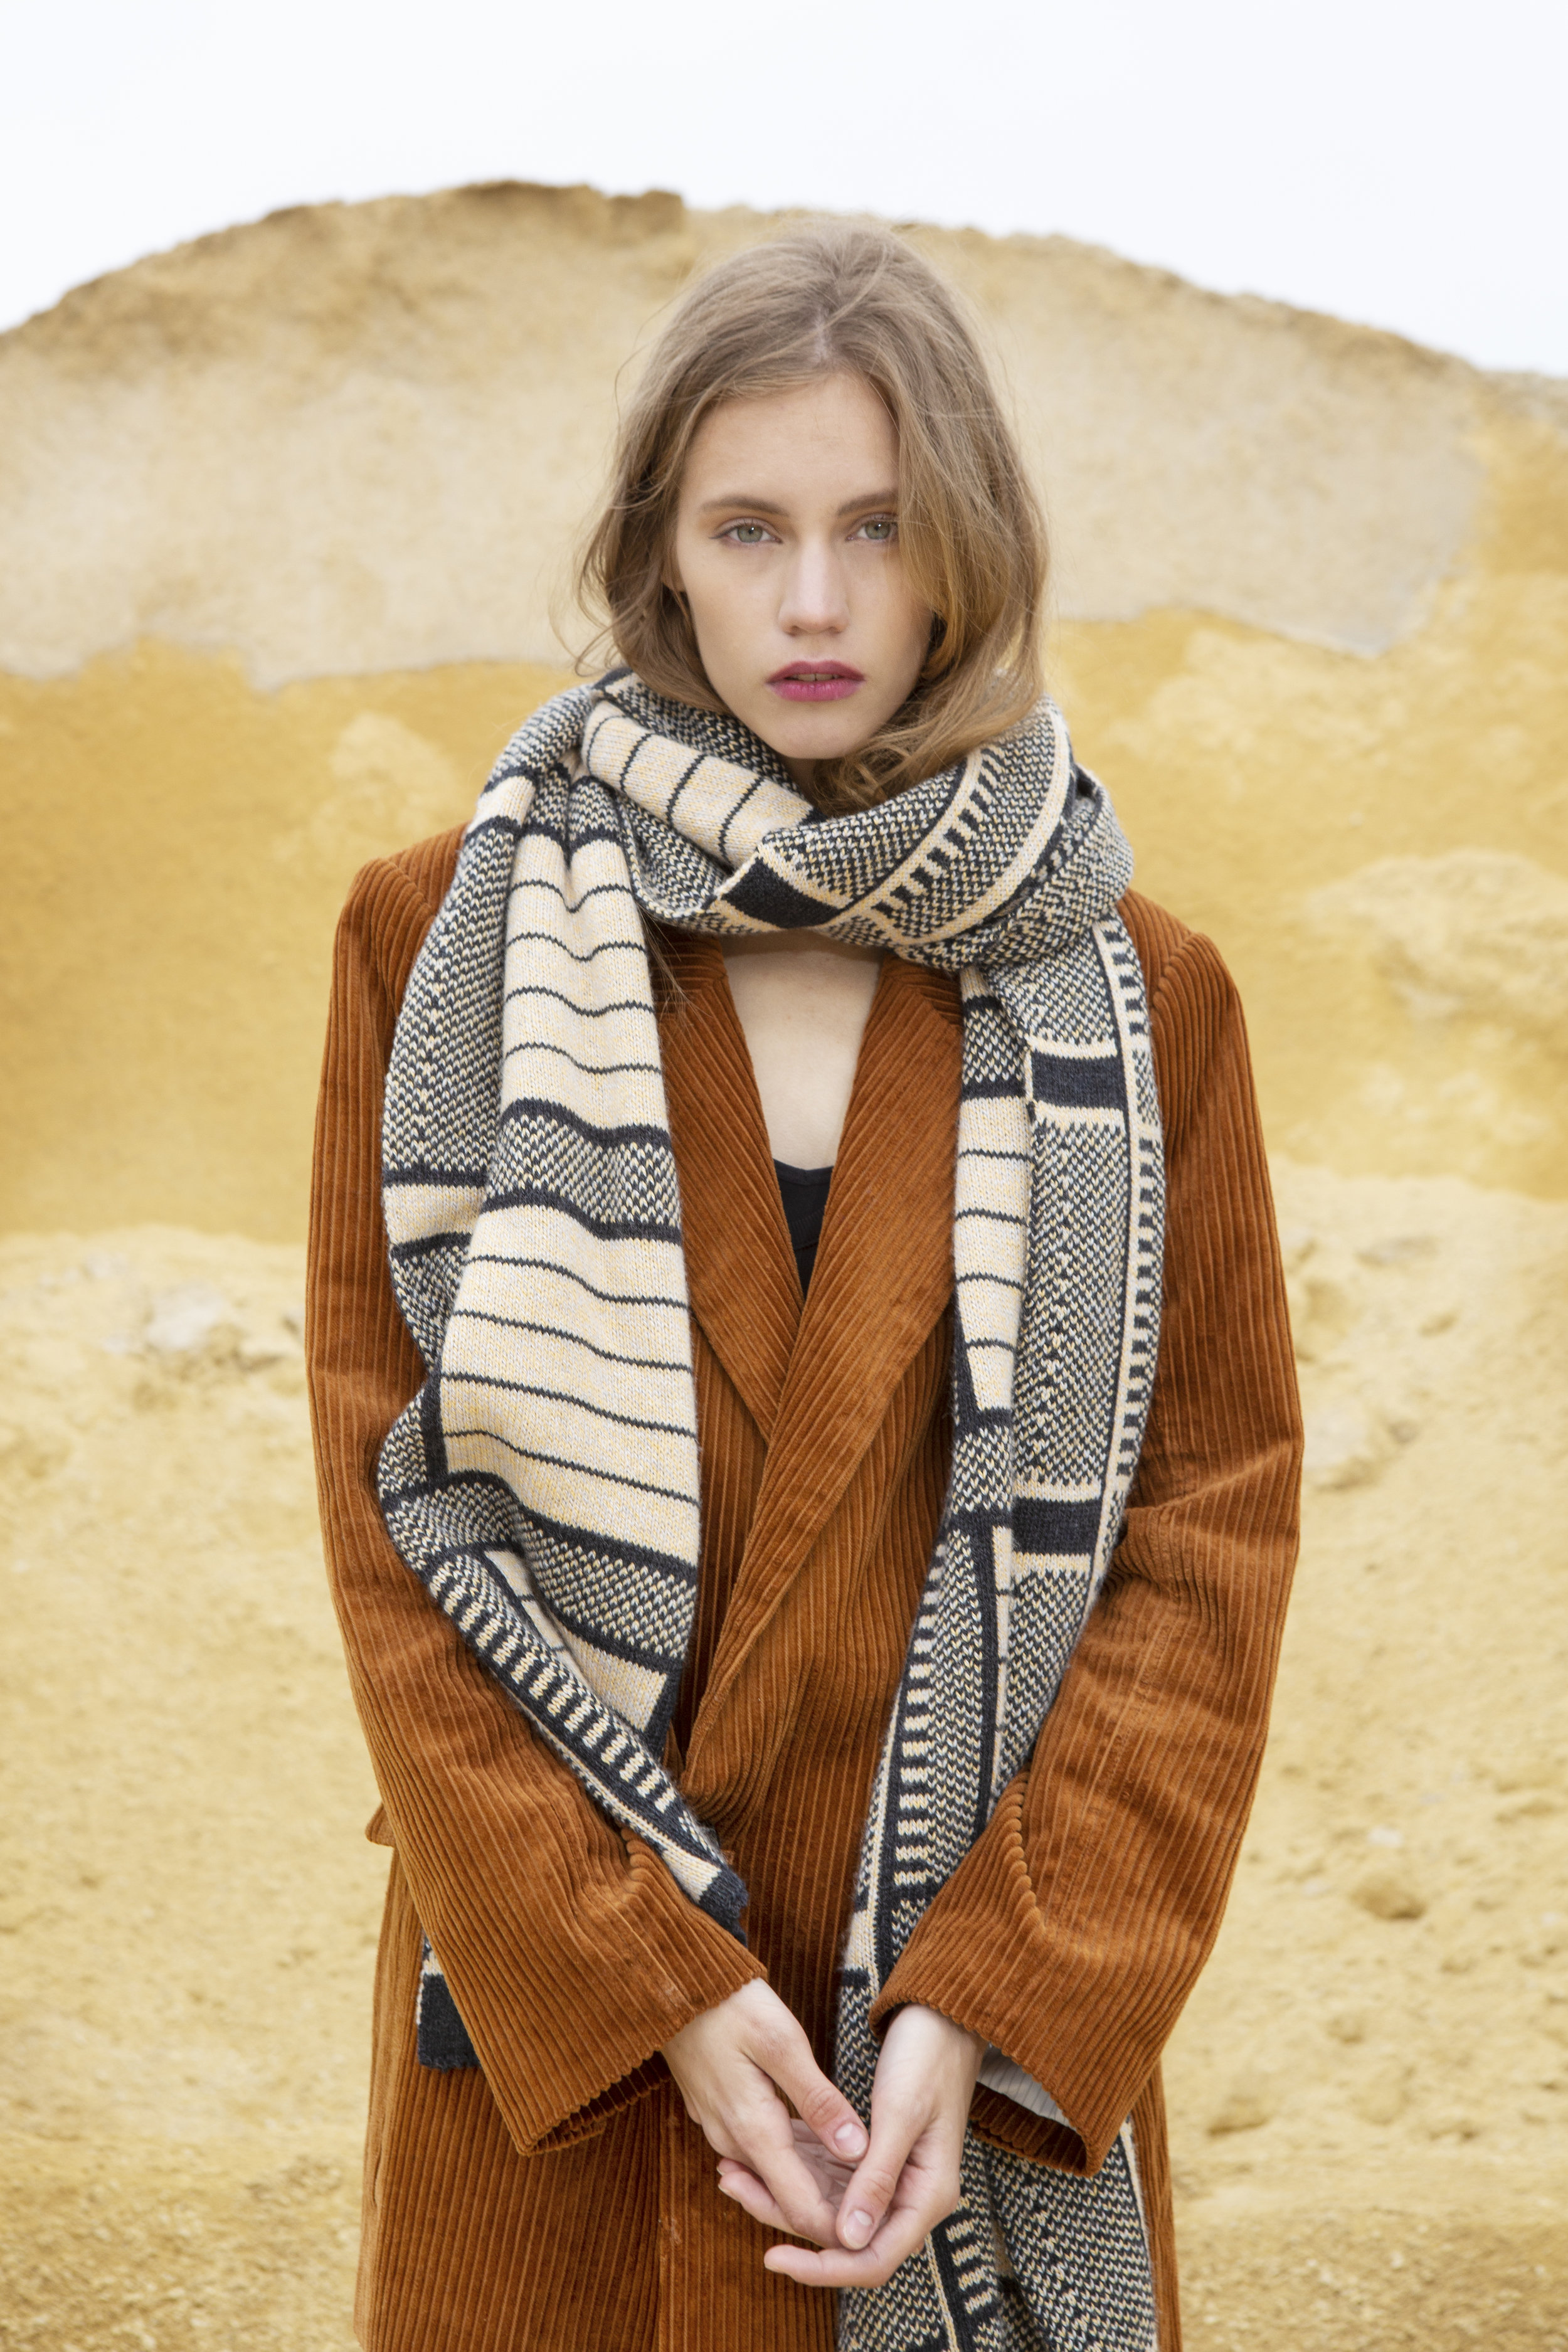 wolvis_AW1819_campagne_07.jpg